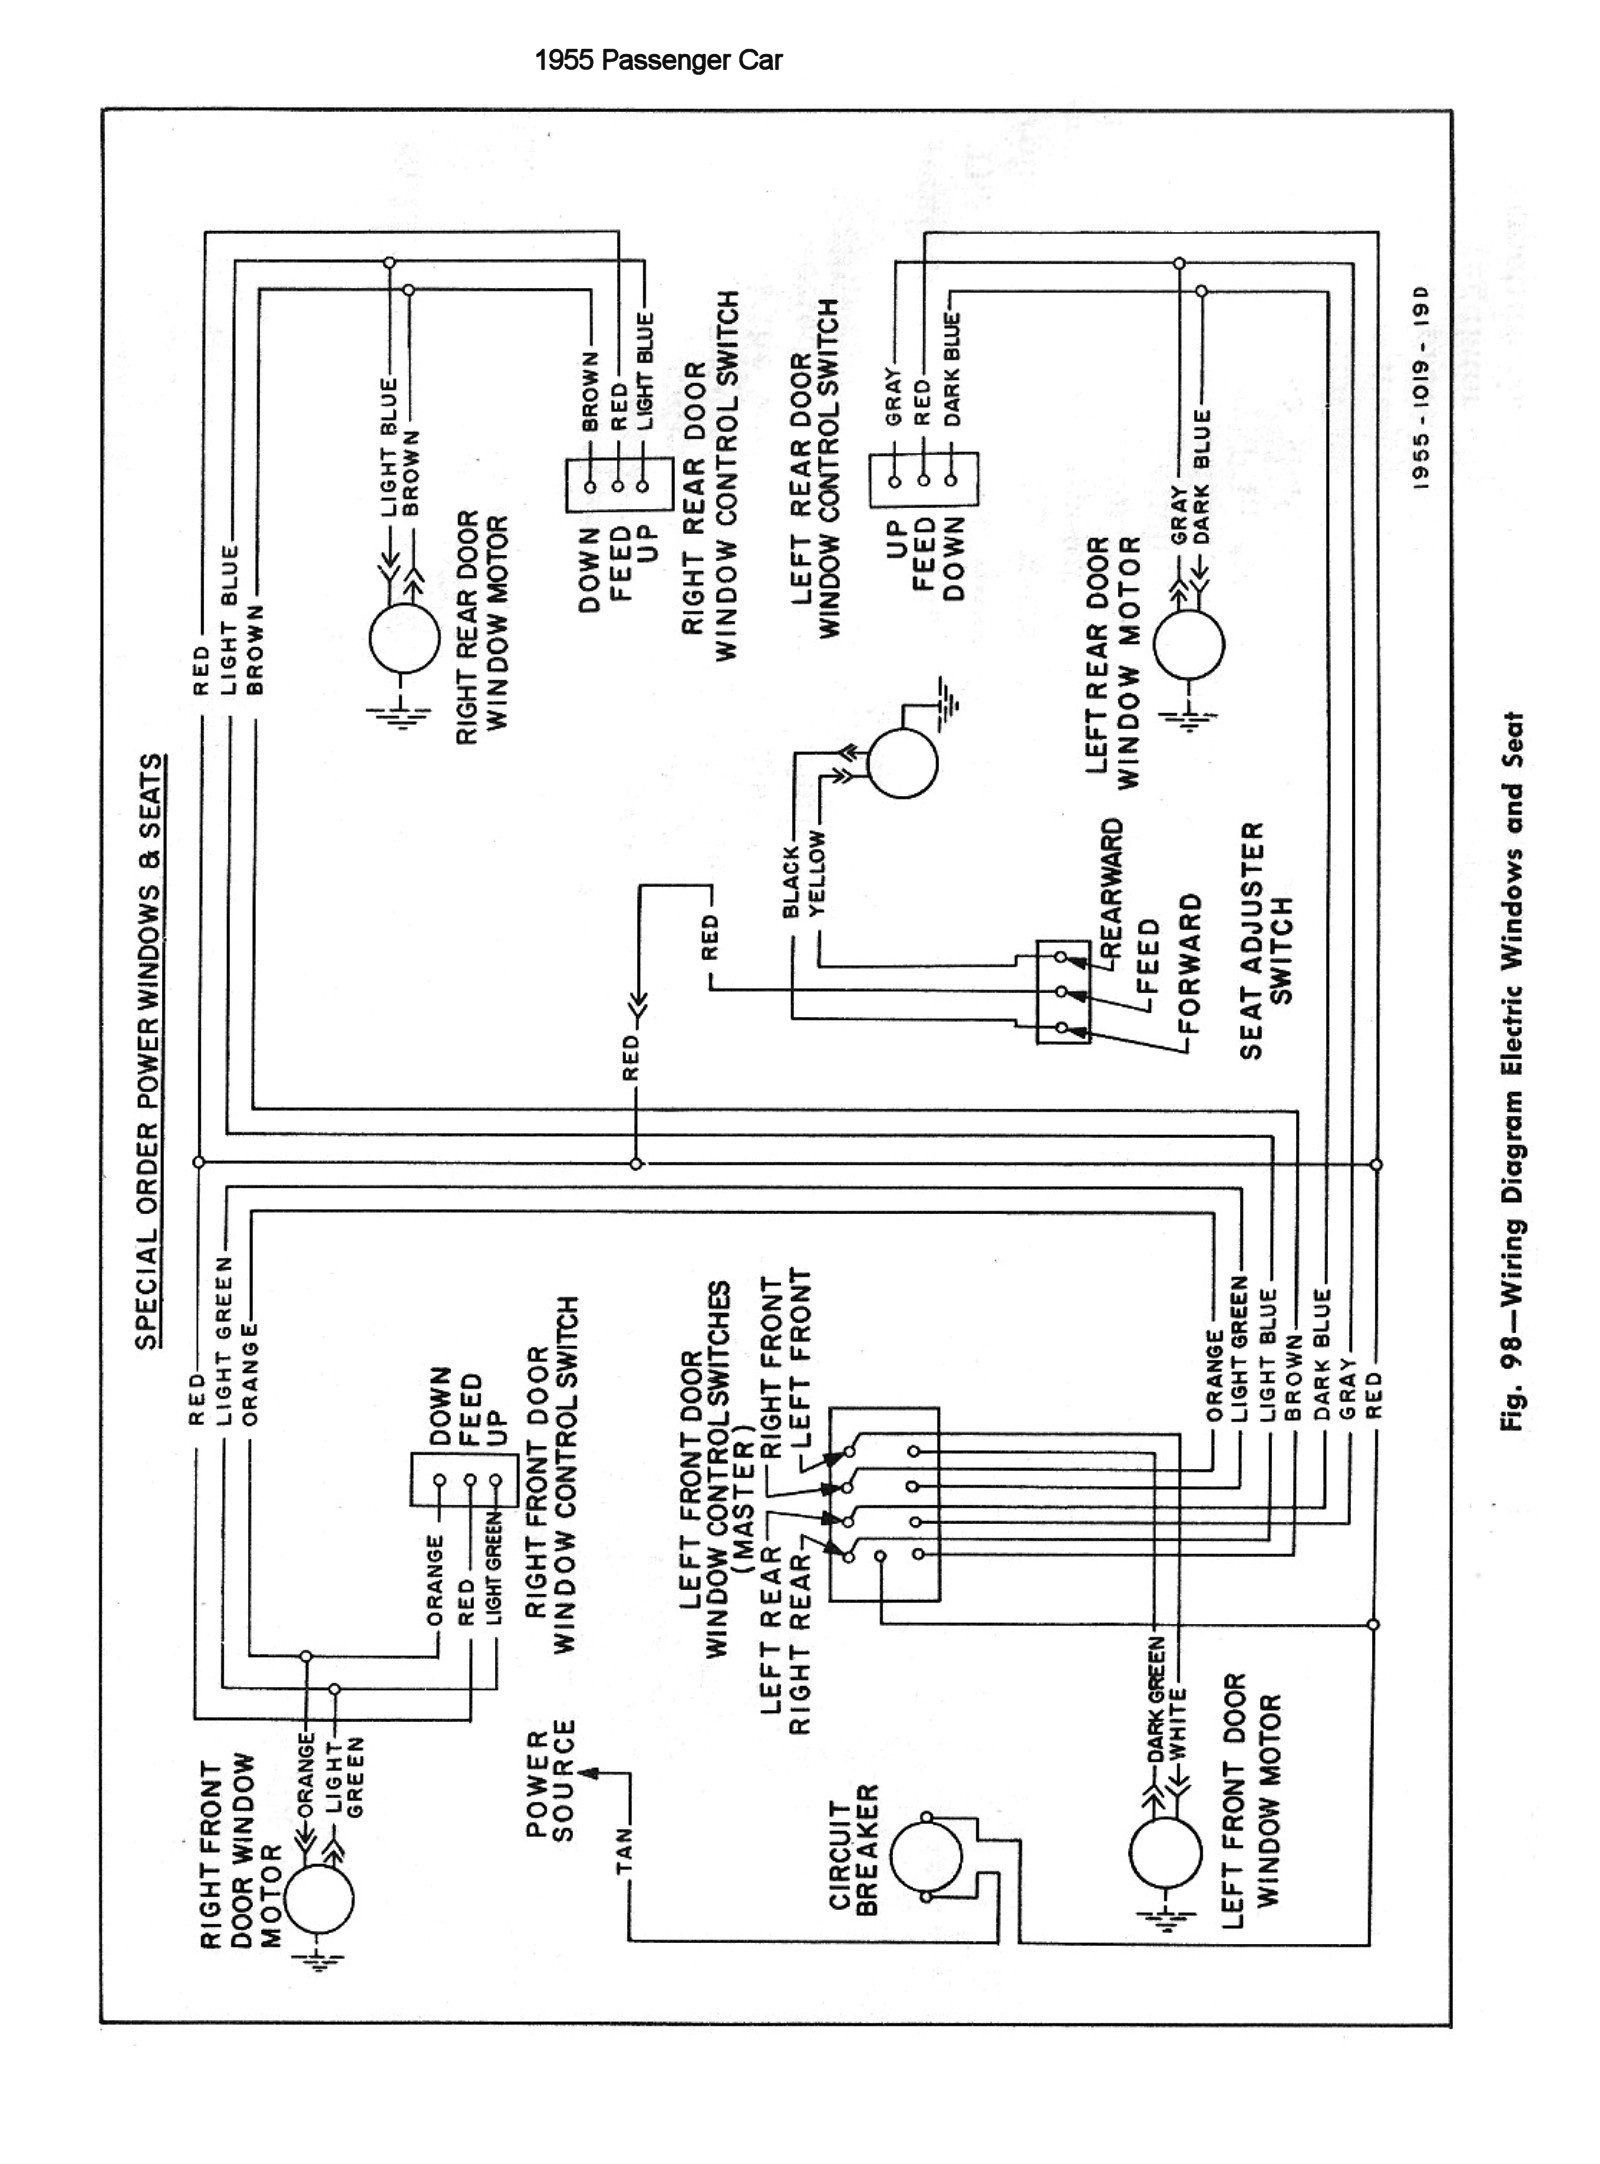 small resolution of 1955 chevy turn signal wiring diagram wiringdiagram org rh pinterest com 55 chevy truck turn signal